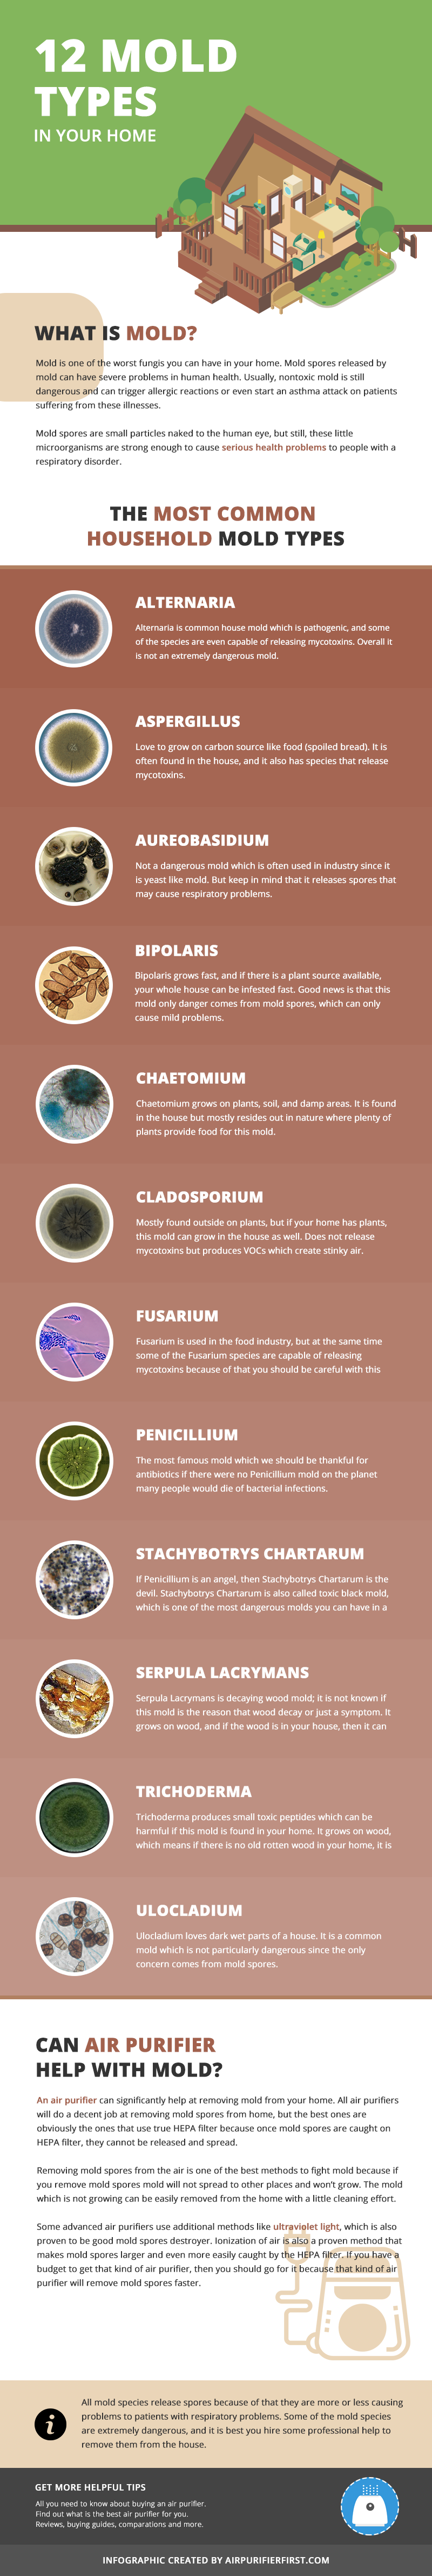 12 Types of Mold Found in Home